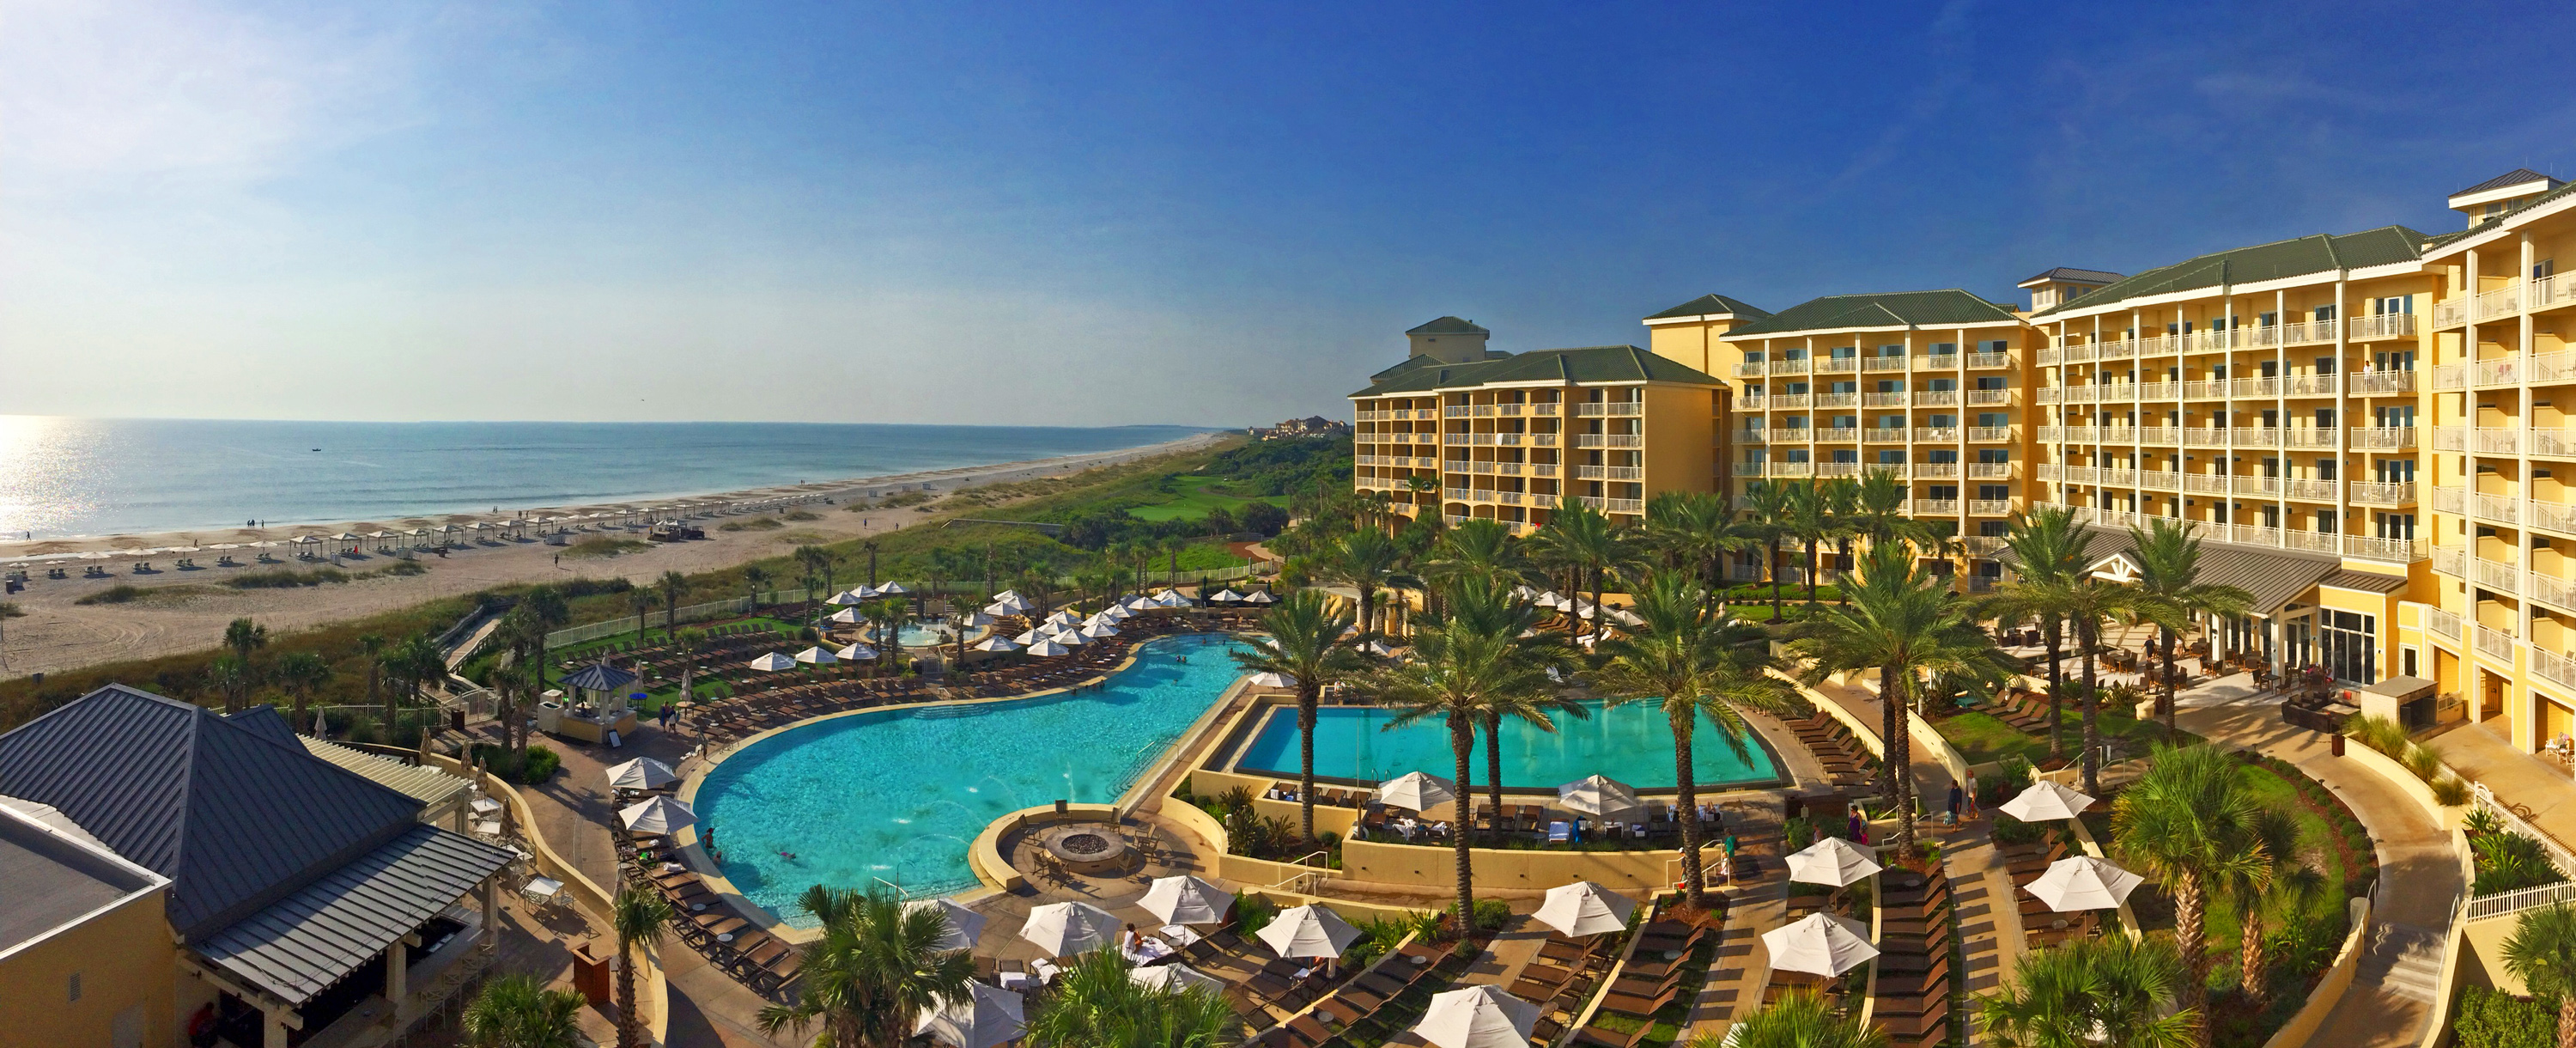 The Omni Amelia Island Plantation Resort Review